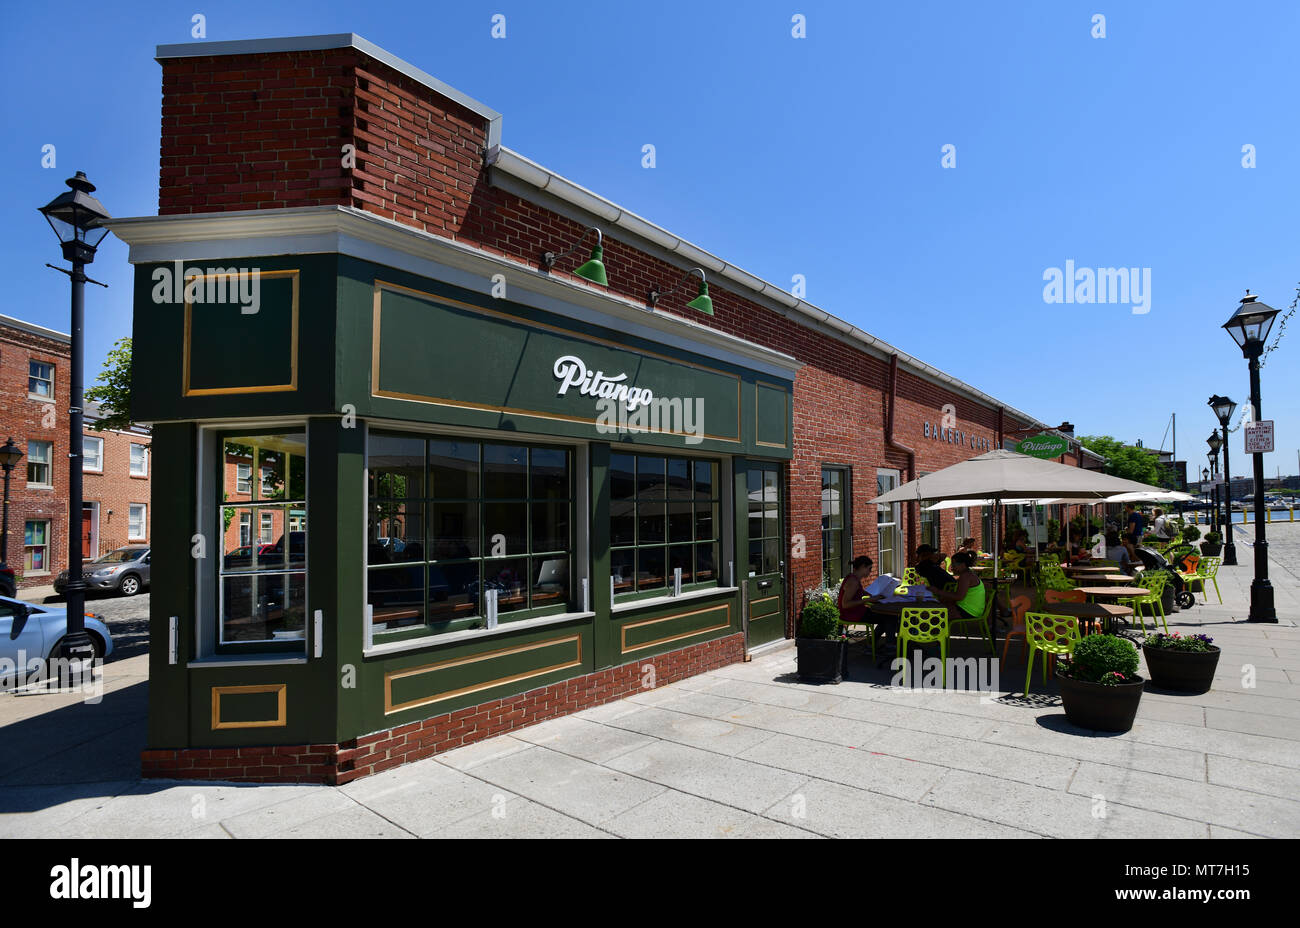 Stati Uniti Maryland Baltimore MD Fells Point Pitango Bakery Cafe ristorante coffee shop Immagini Stock